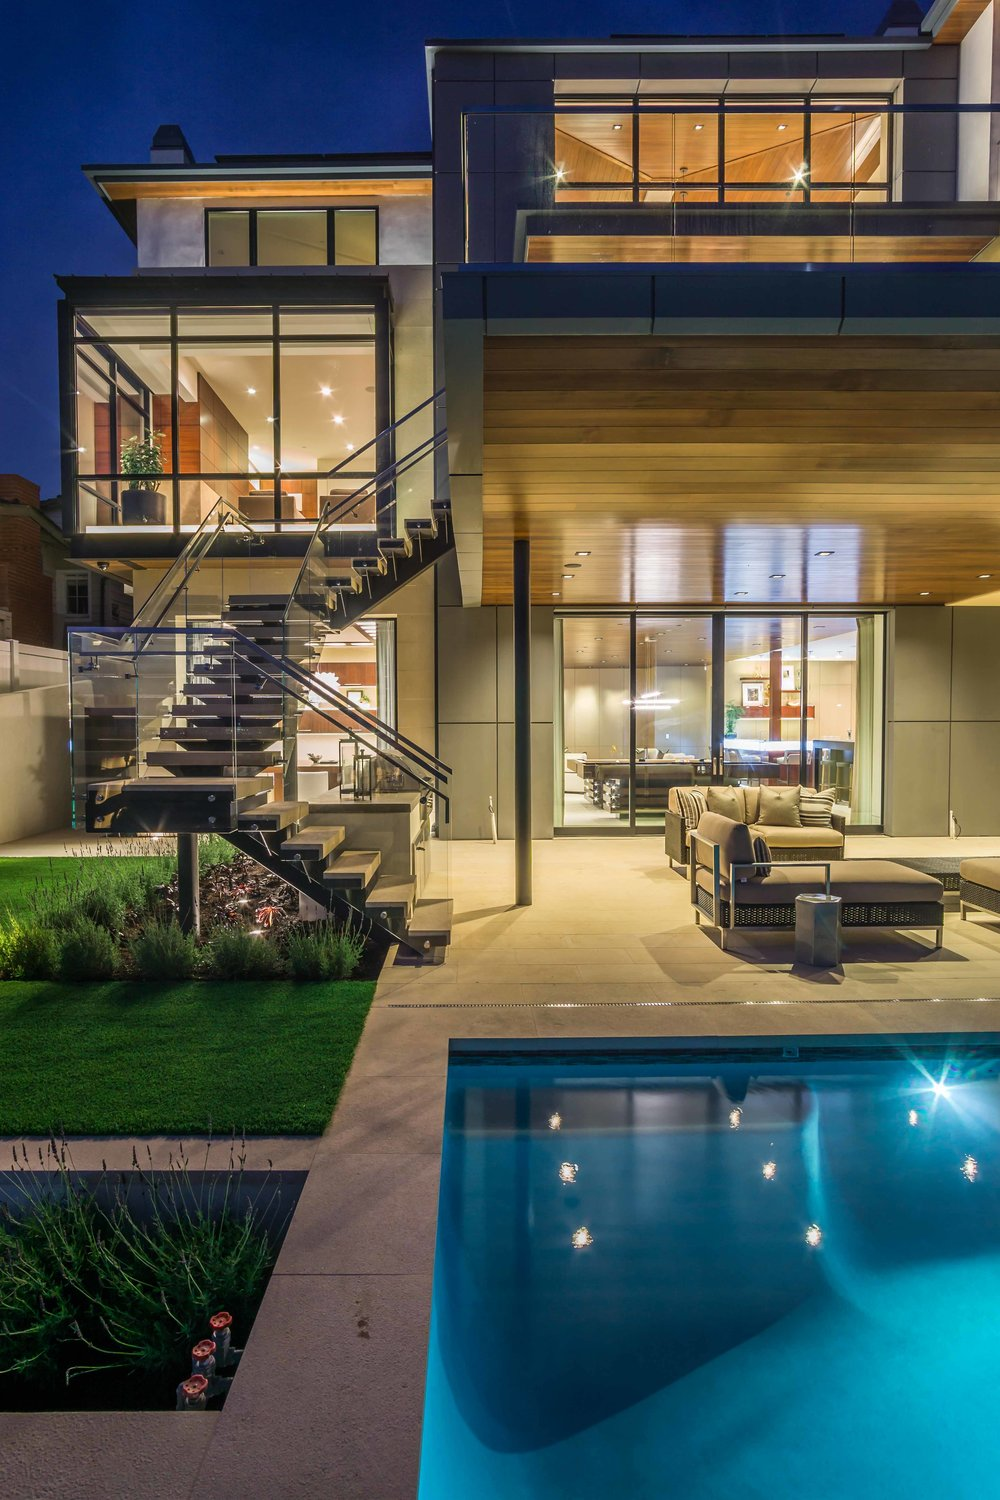 Exterior twilight photograph  swimming pool and Patio of luxury home on Kings Road in Newport Beach